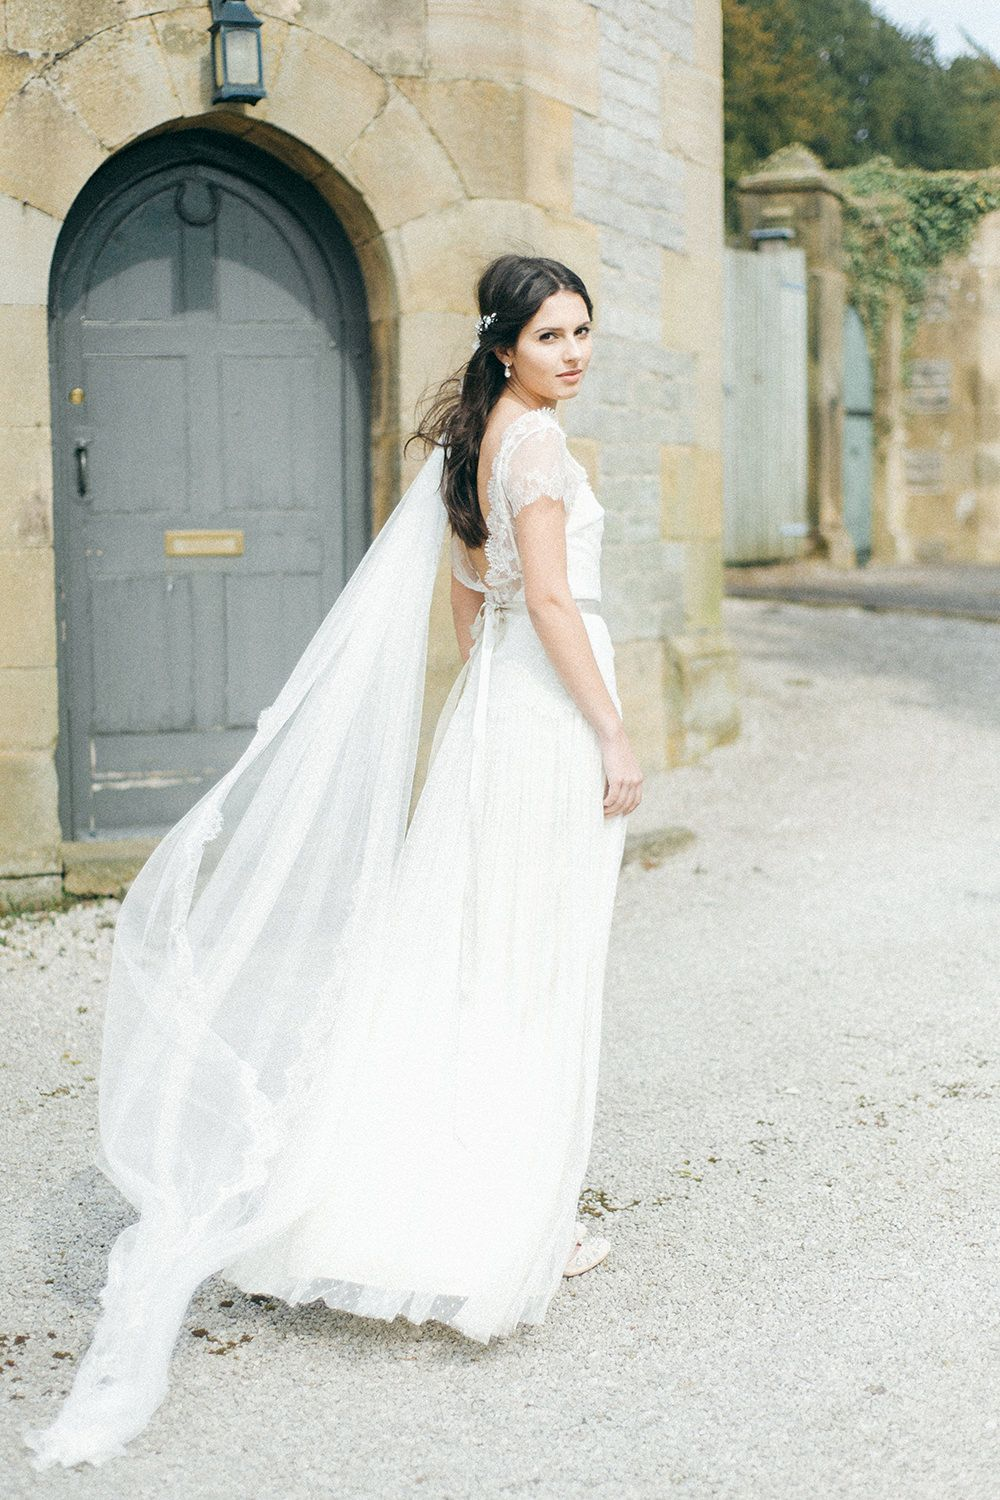 Rustic ethereal french chateau inspiration shoot french chateau images by emma pilkington photography rustic ethereal french chateau inspiration flowers by swallows and ombrellifo Choice Image